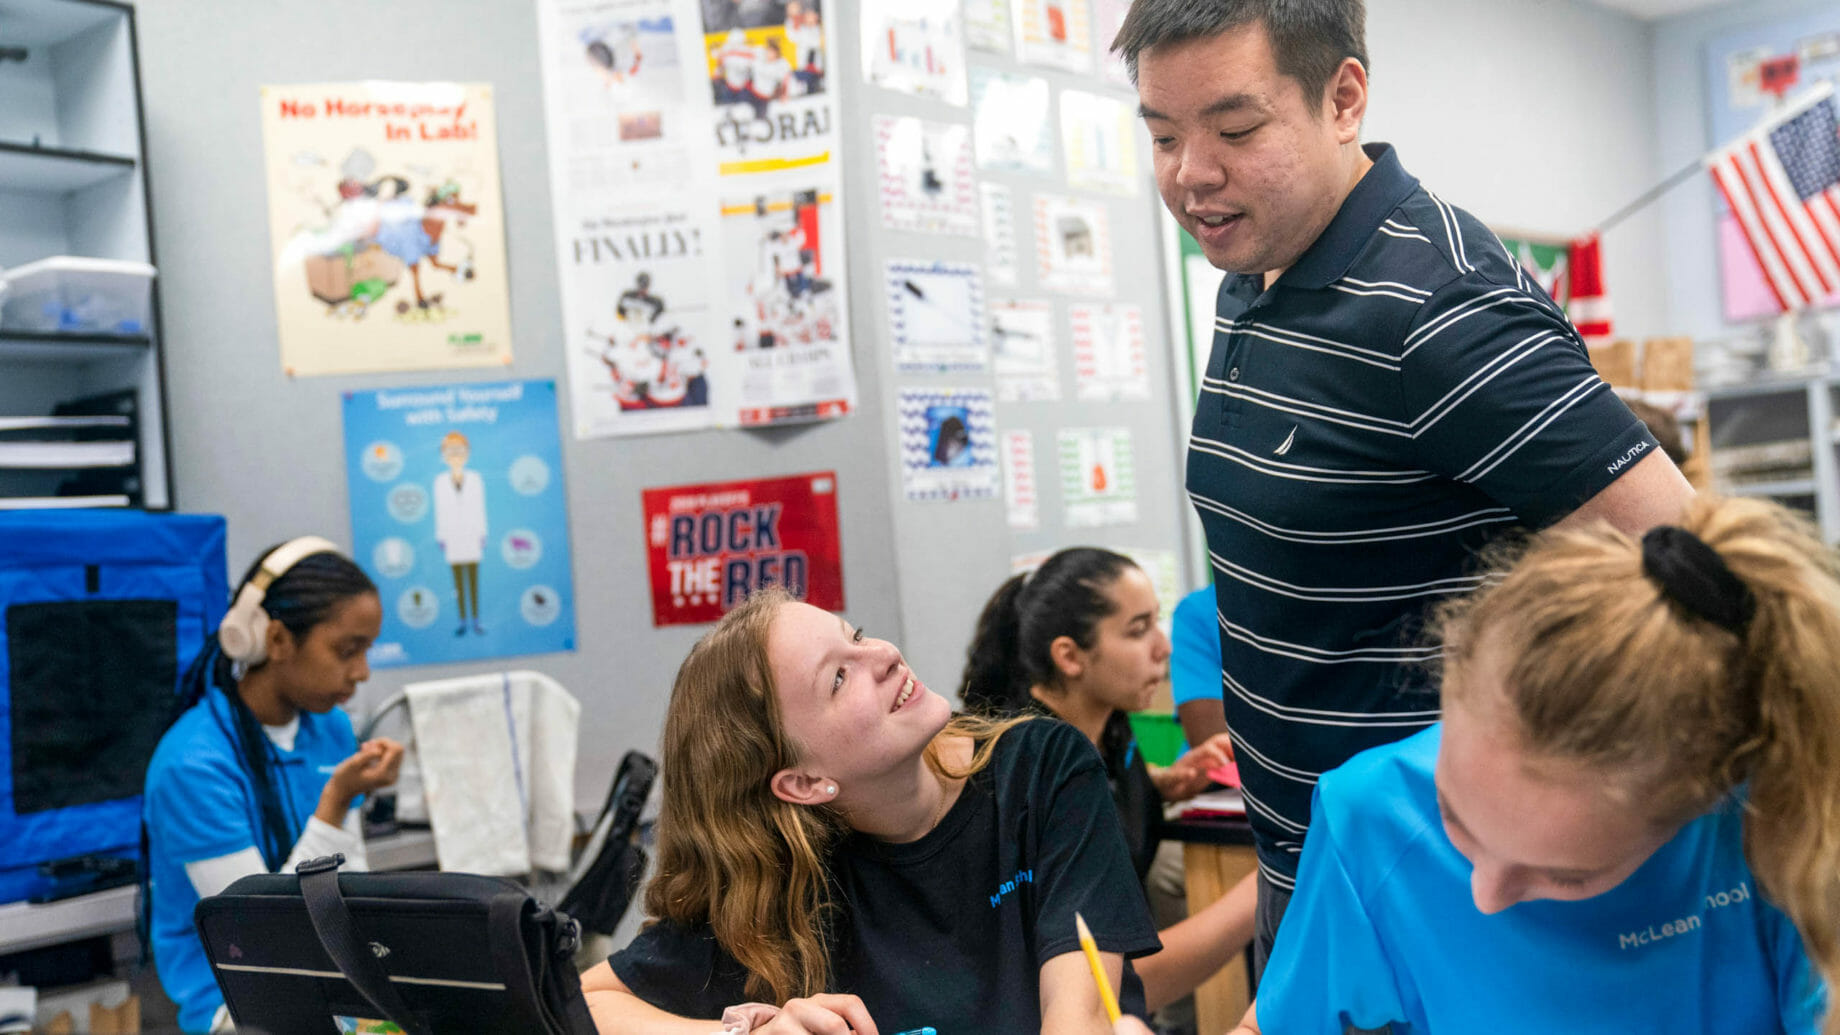 Mr. Tran Teaching Students in Class